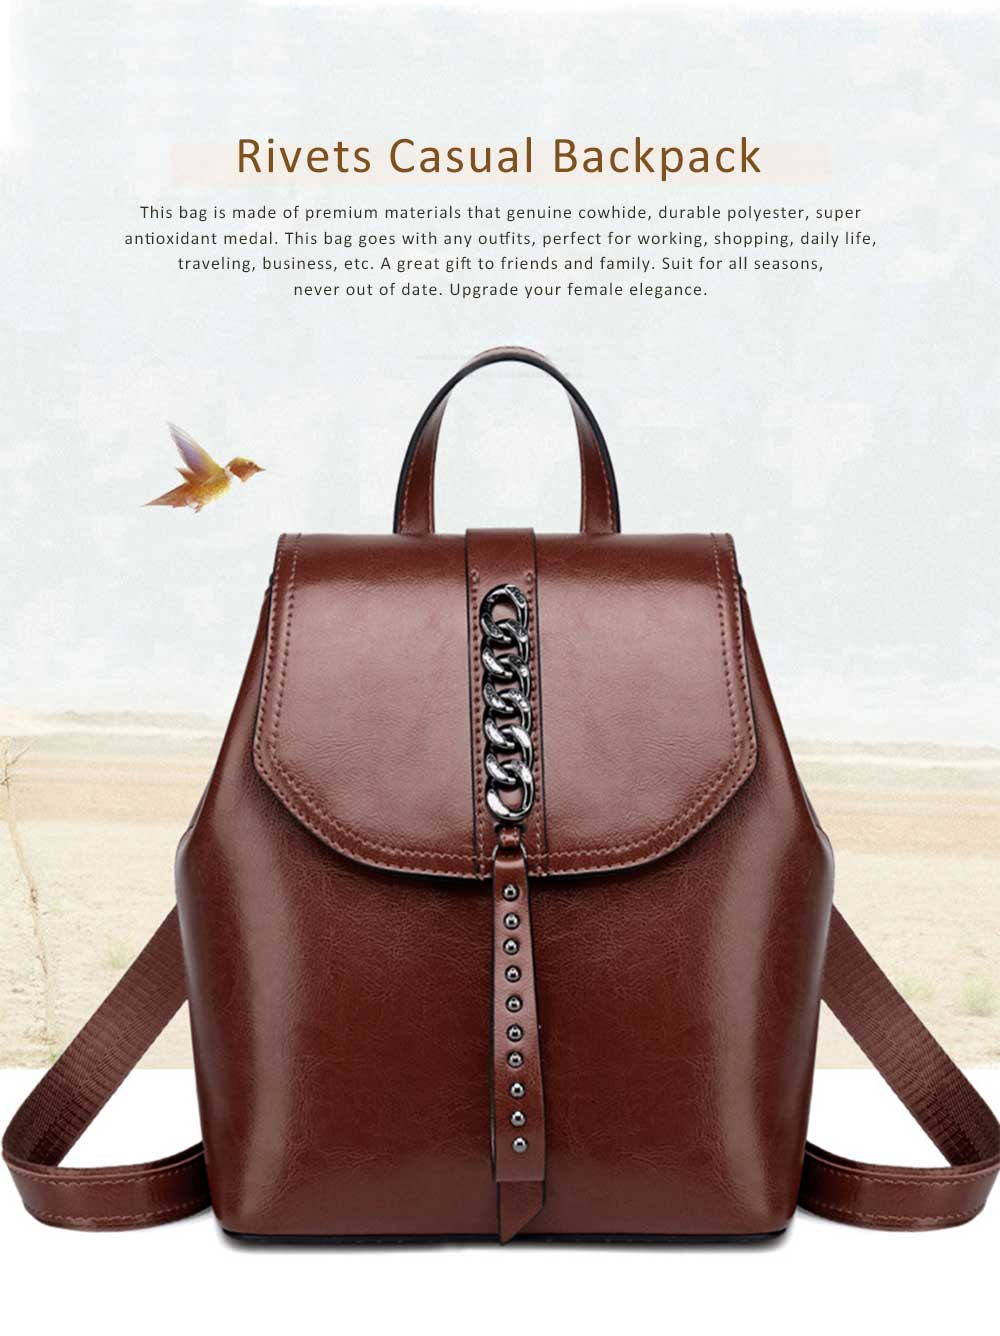 Fashion Retro Backpack Casual Genuine Leather Rucksack Shoulder Bag Women Fashion Accessories Elegant Large Capacity Rivets Travel Bag 0